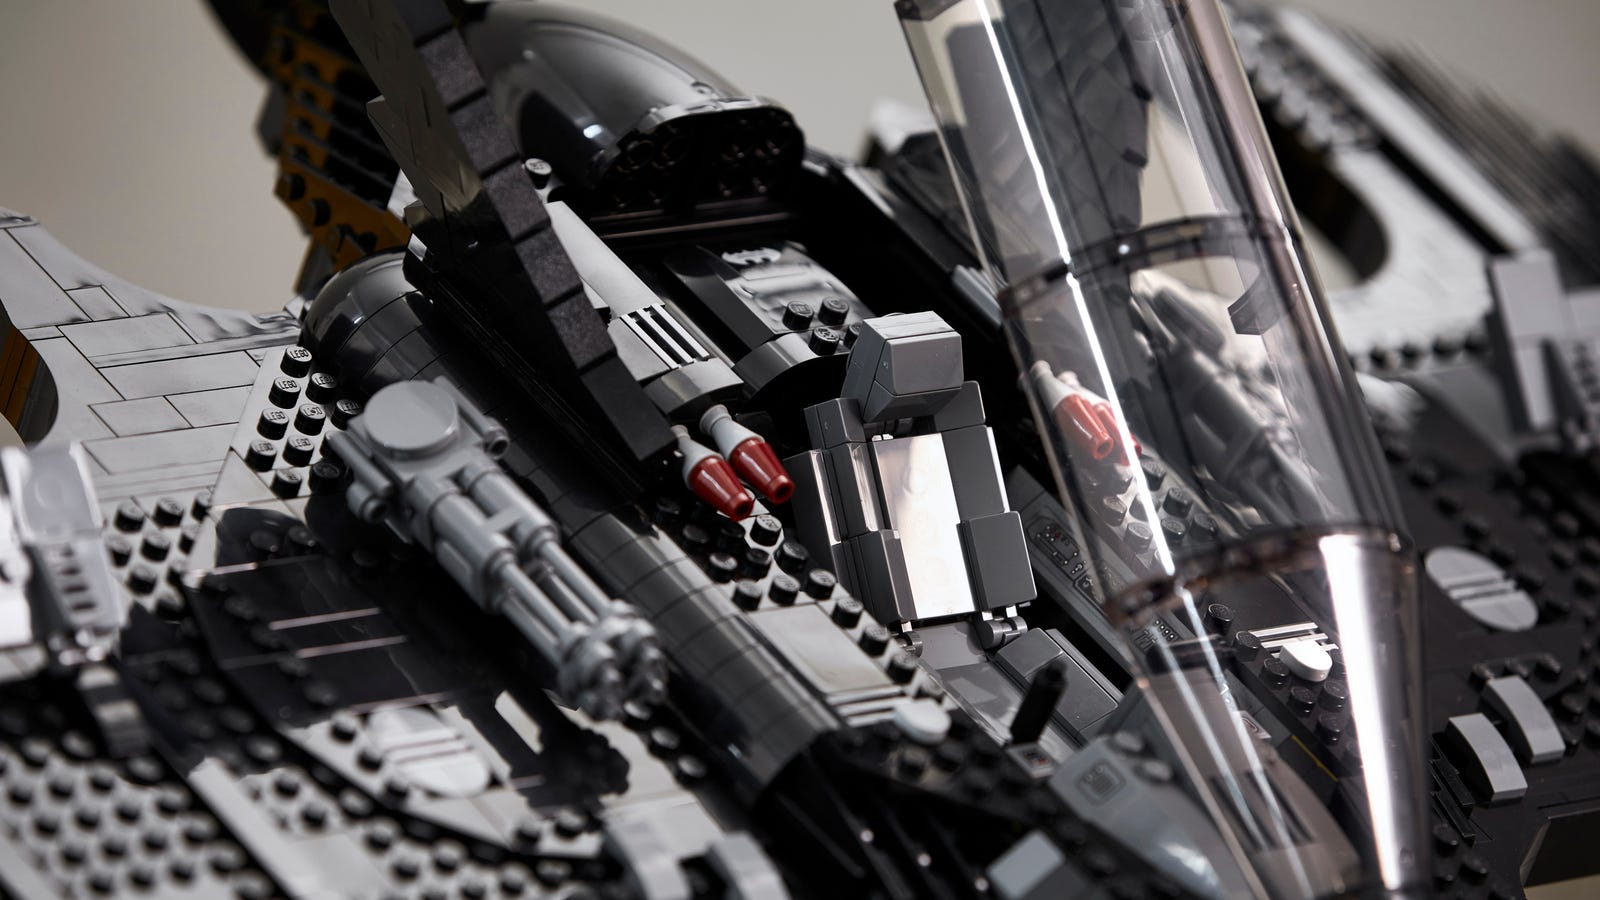 An elongated cockpit opens to reveal seating for just one minifigure—Vicki Vale? I guess you're walking.